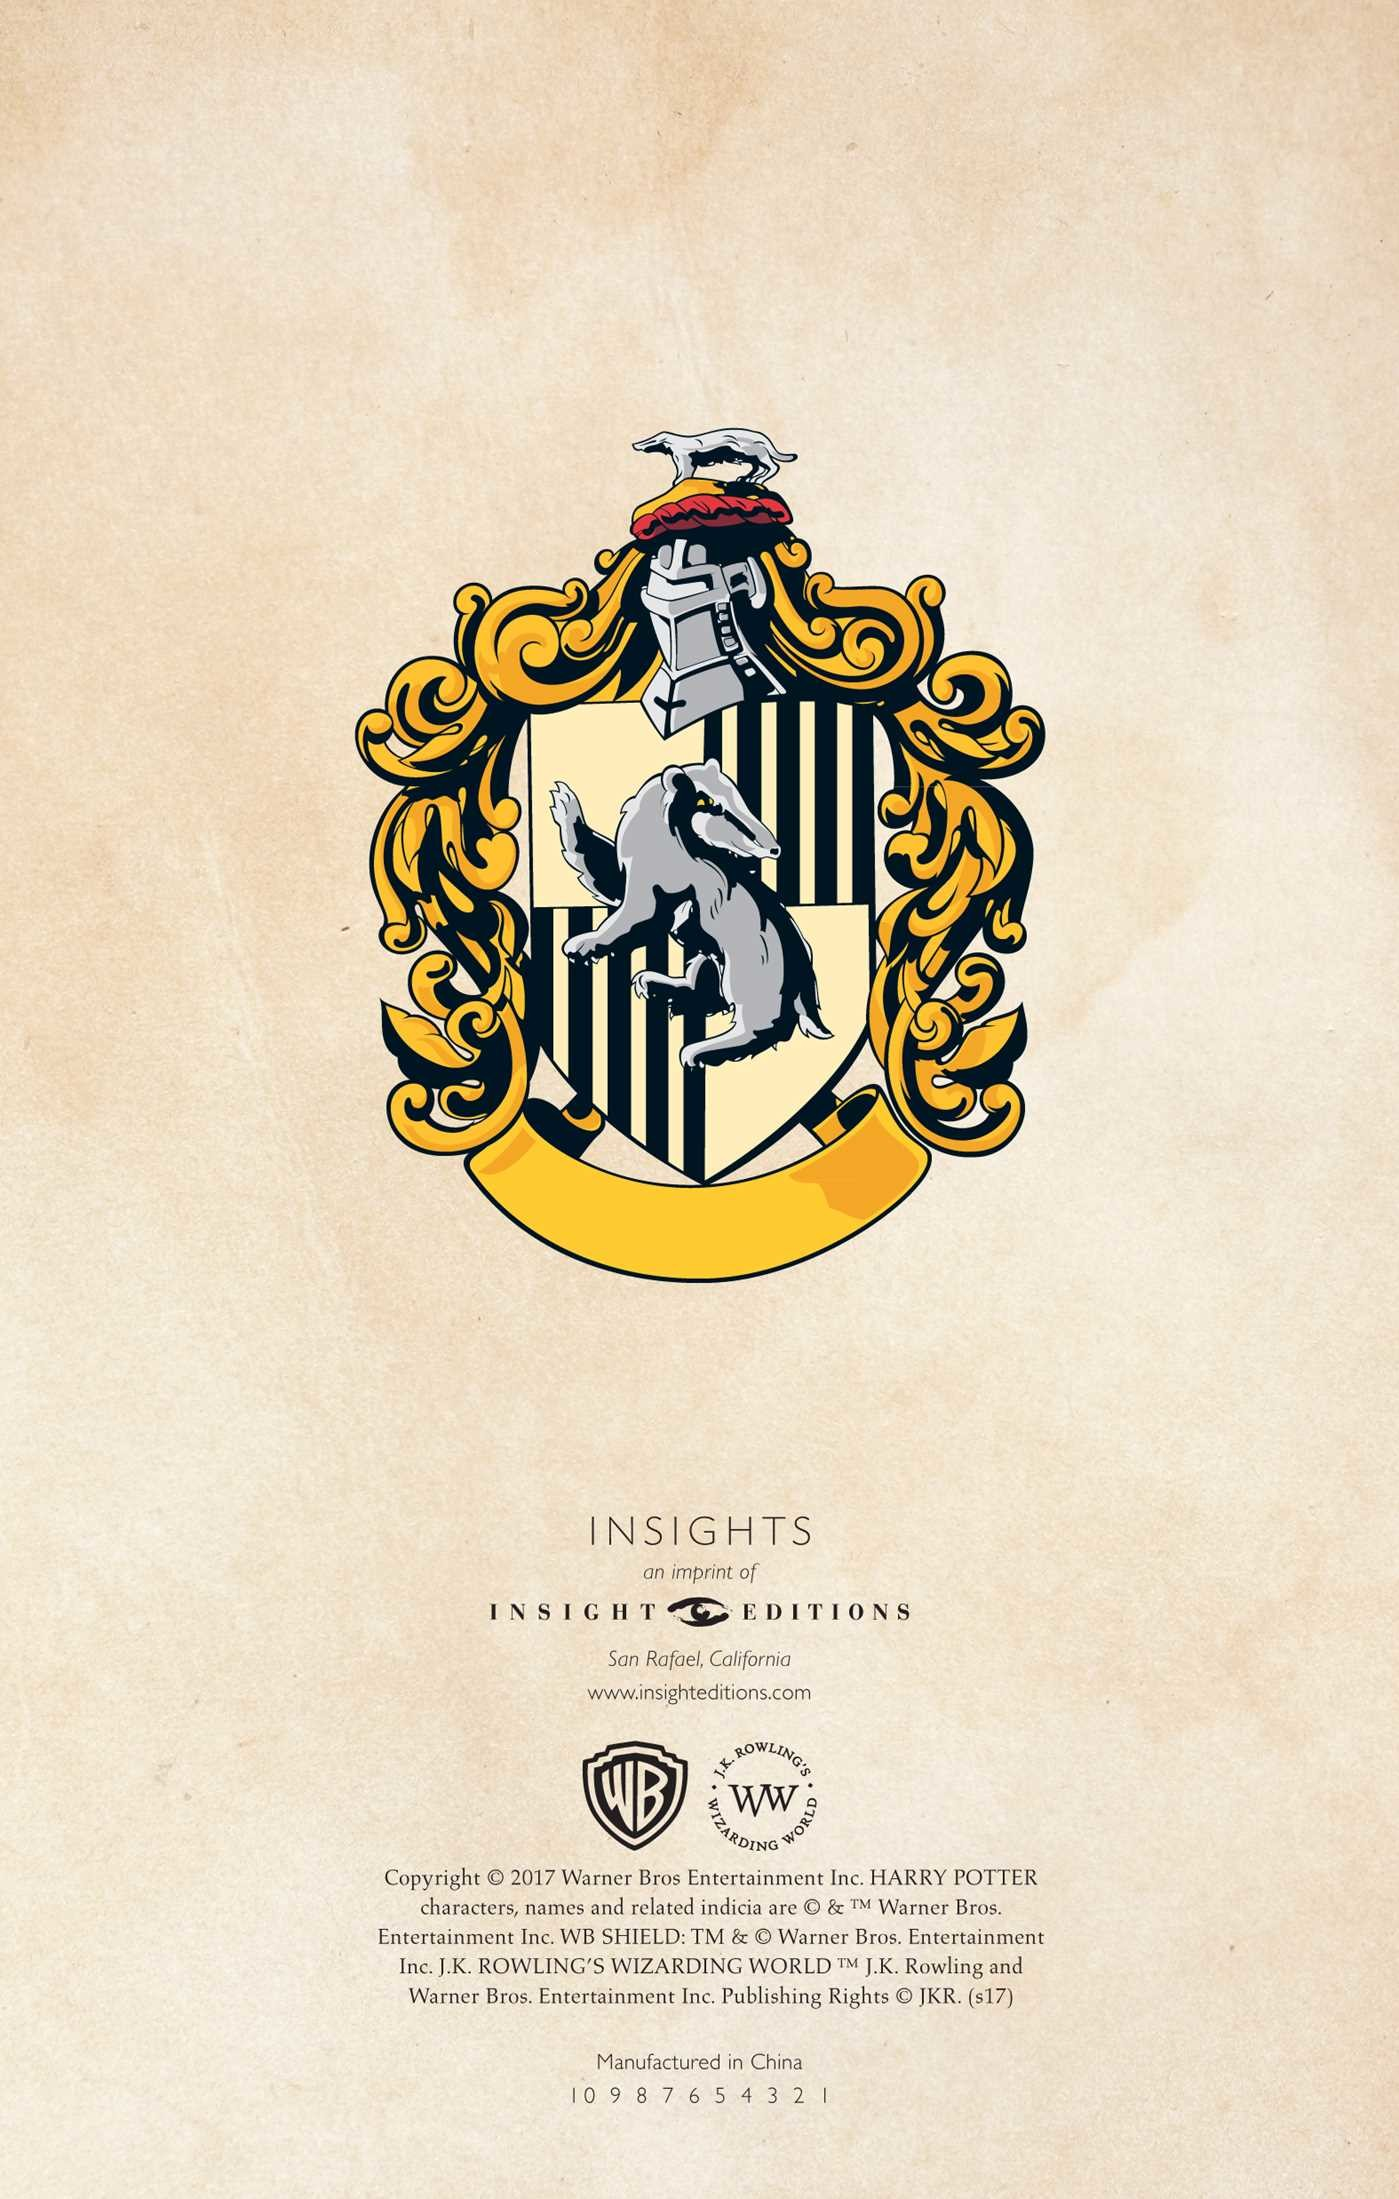 Harry potter hufflepuff ruled notebook book by insight editions harry potter hufflepuff ruled notebook 978168383286703 biocorpaavc